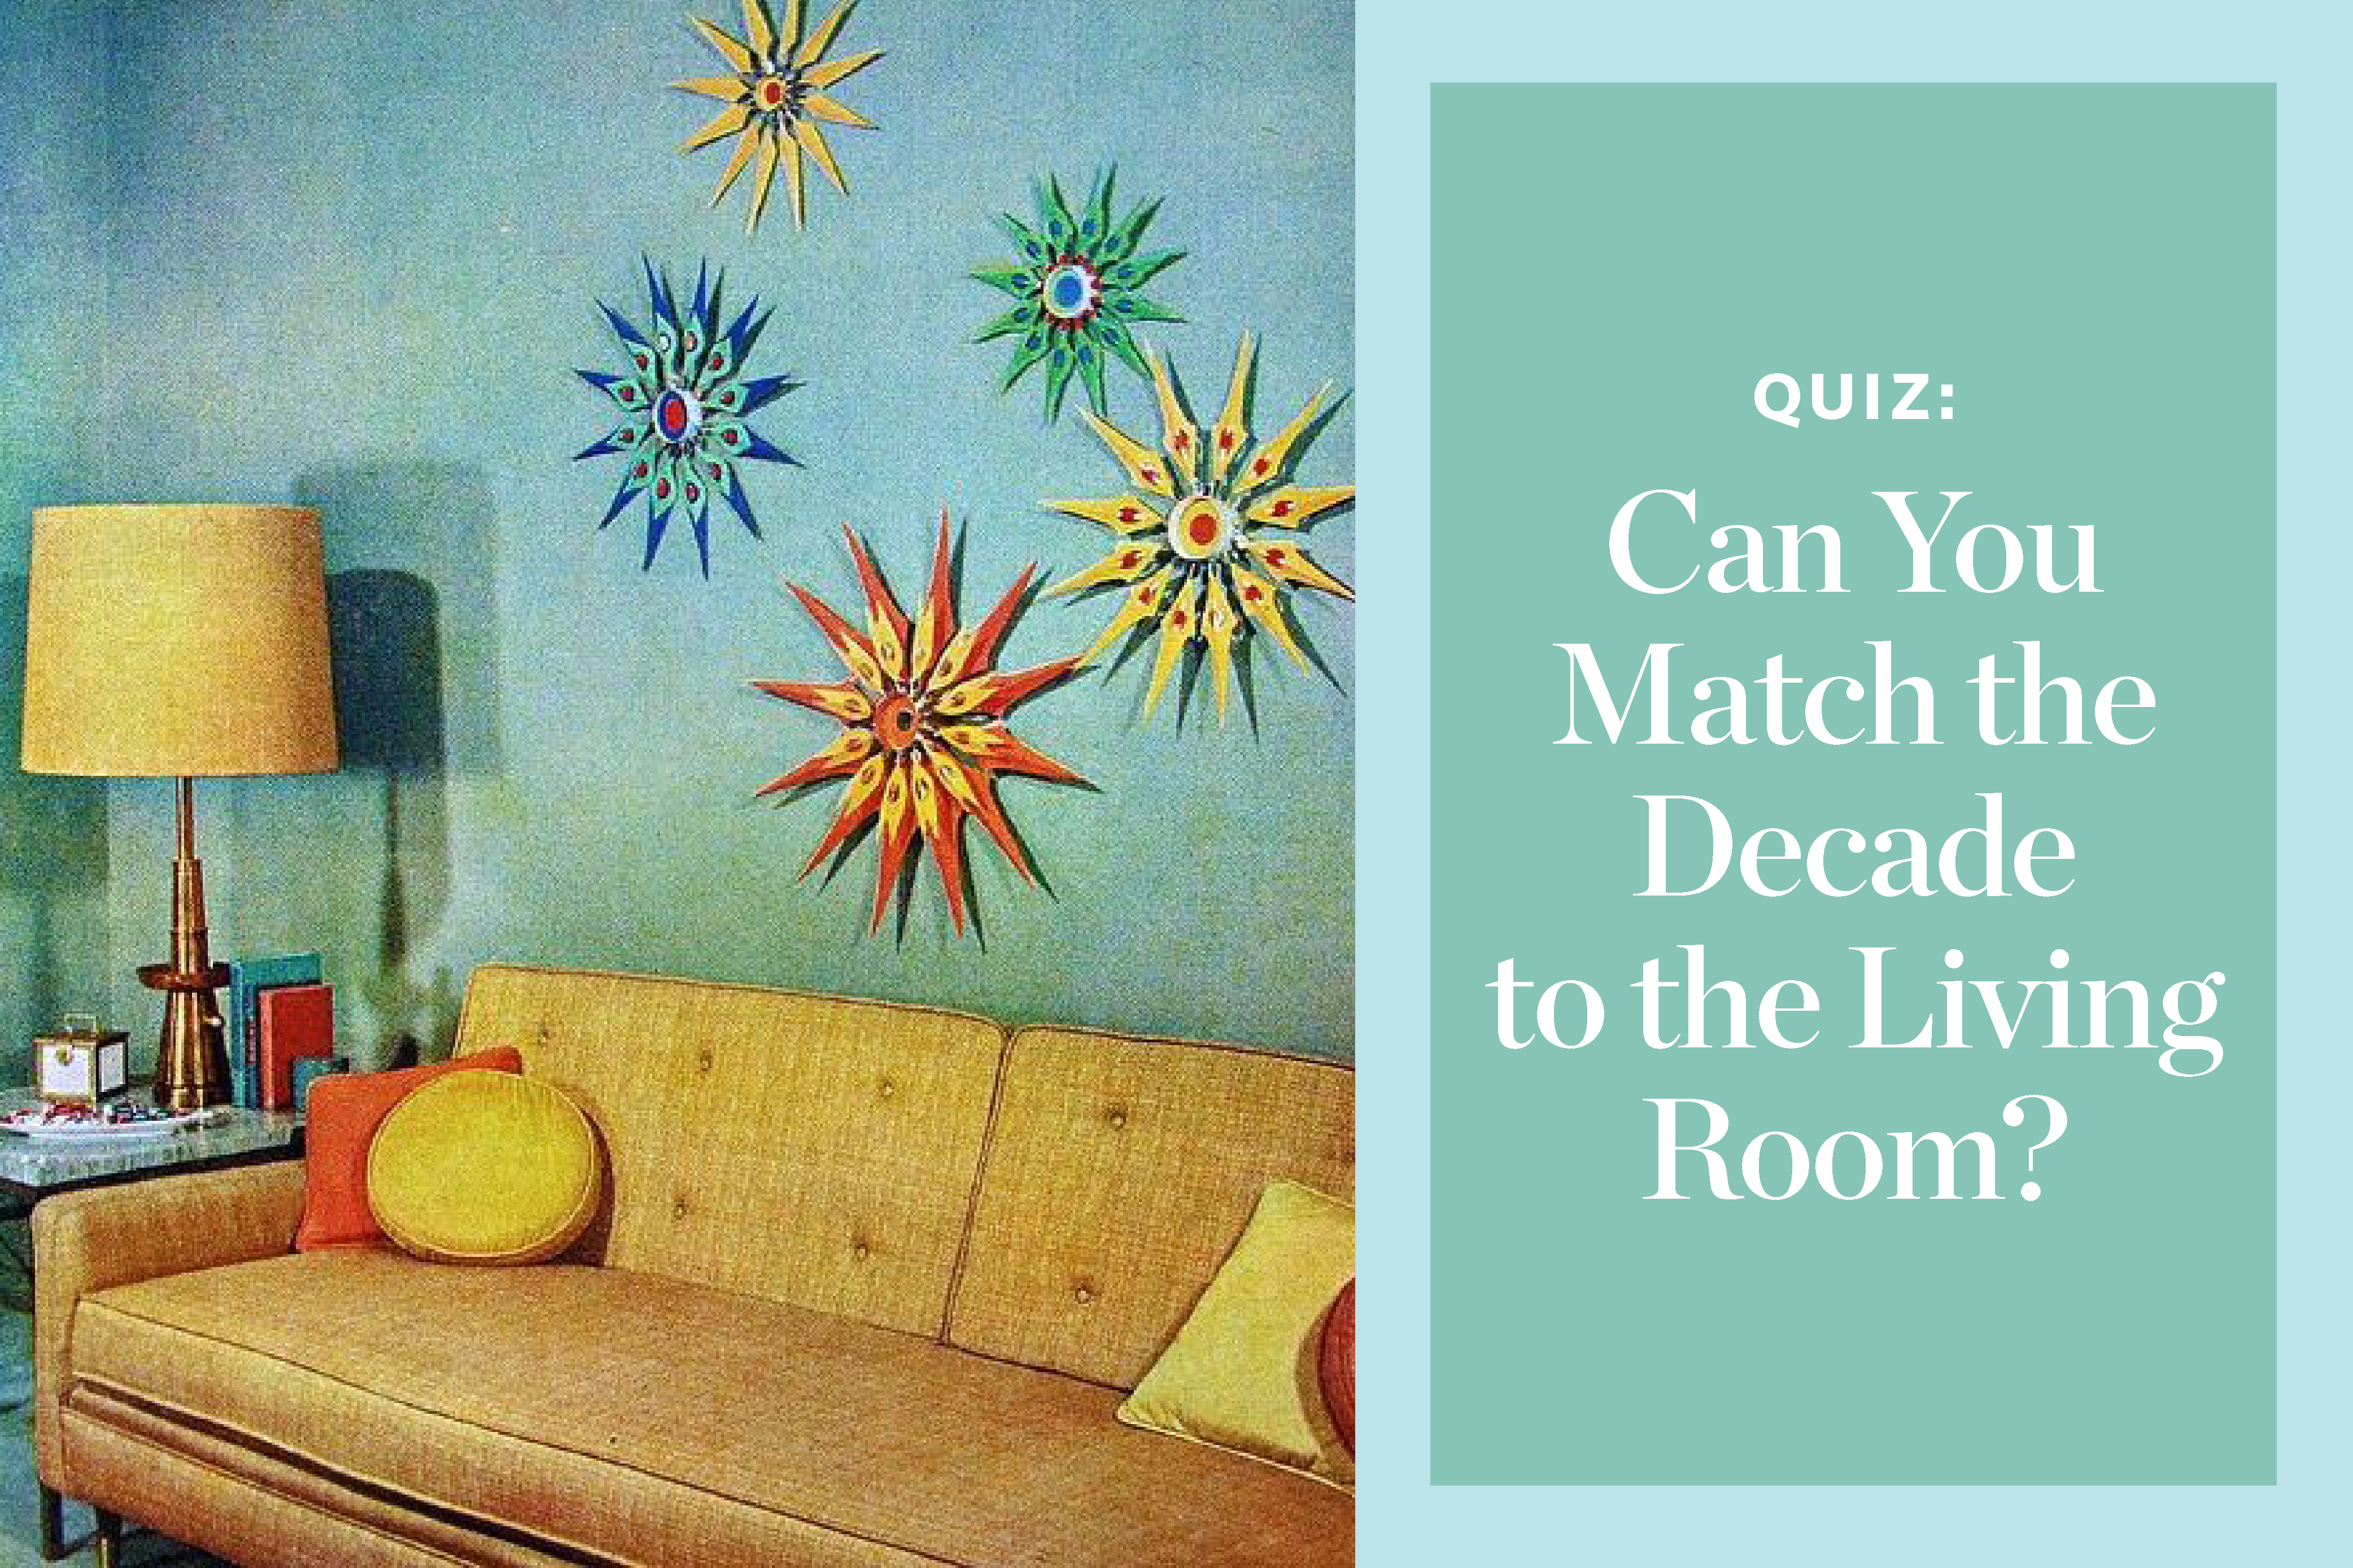 Quiz: Living Room Styles from the 1950s, '60s & '70s